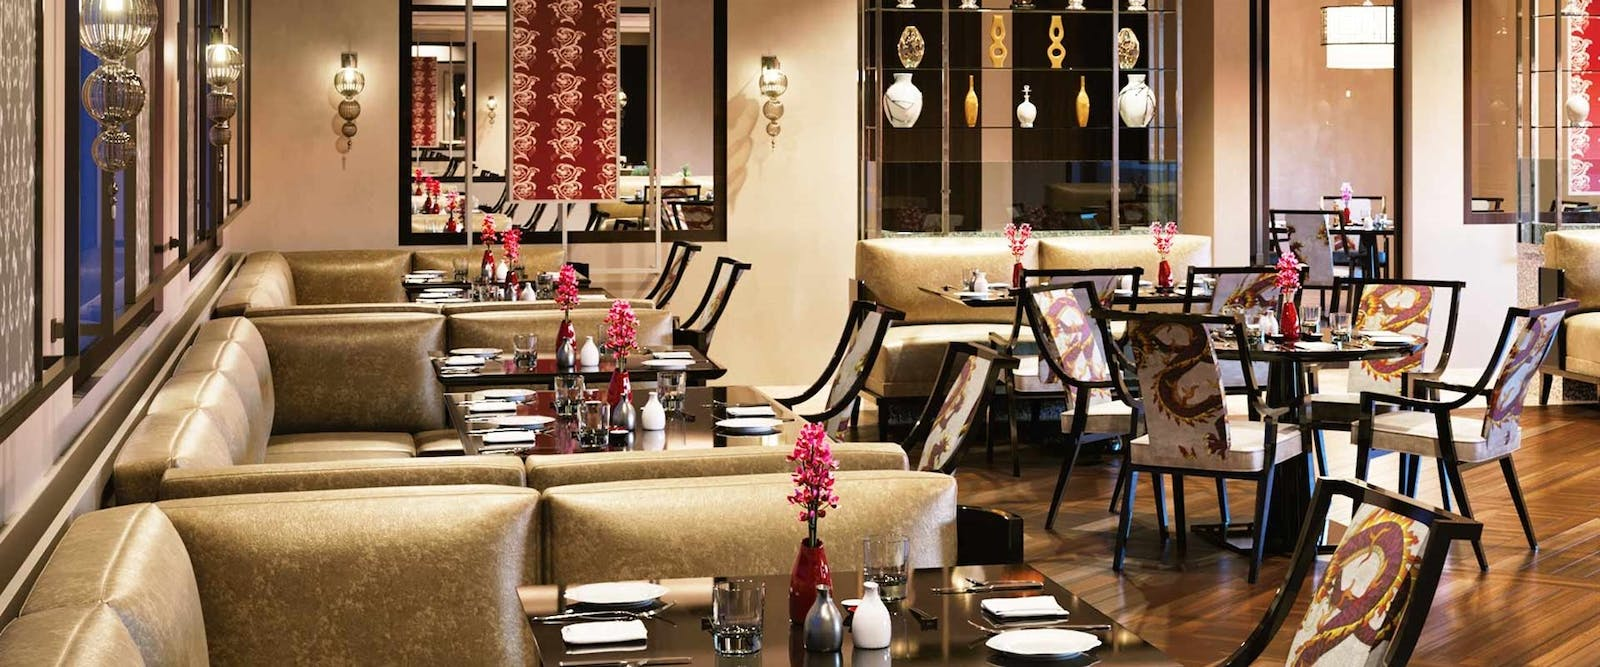 Restaurant at Oberoi New Delhi